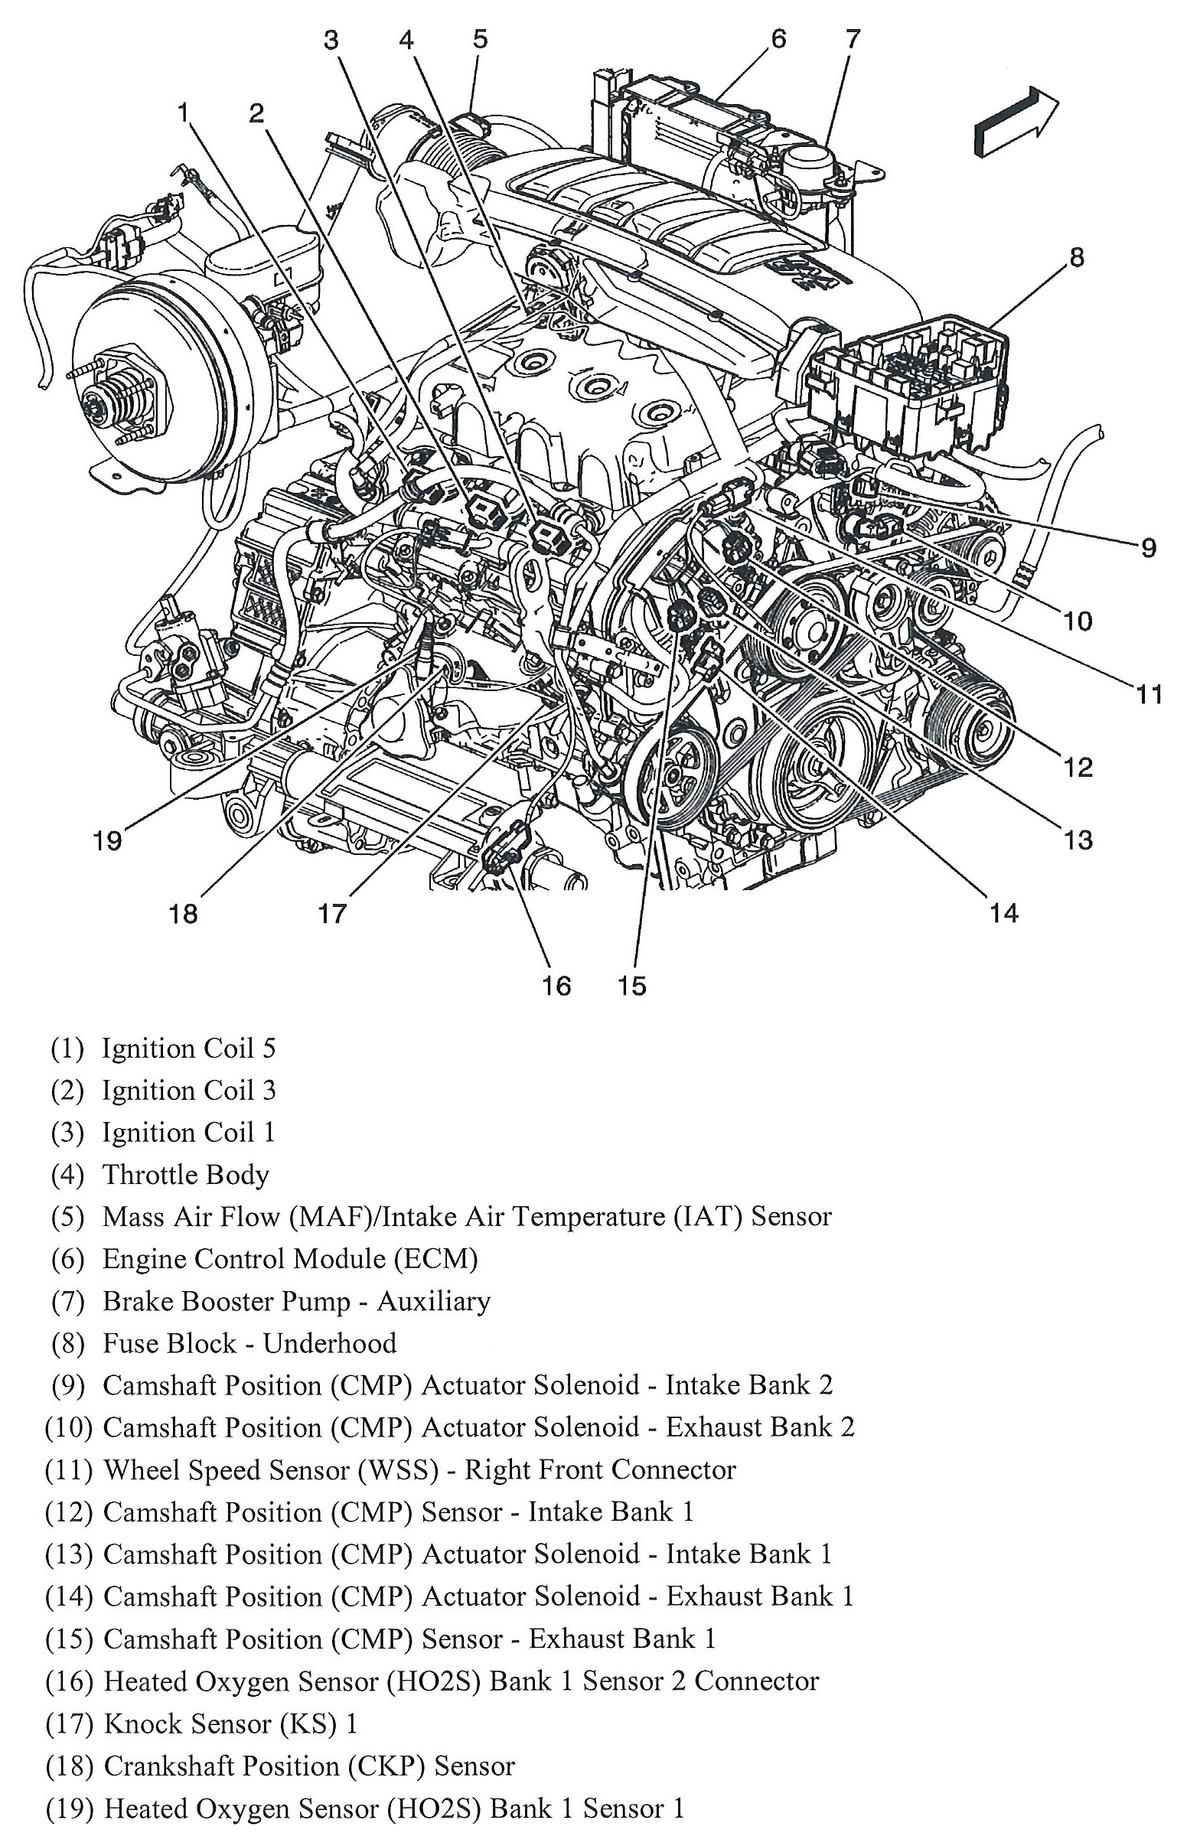 [ZTBE_9966]  OX_2060] 2010 Chevy Traverse Engine Diagram Schematic Wiring | 2010 Chevy Traverse Engine Diagram |  | Genion Hendil Mohammedshrine Librar Wiring 101